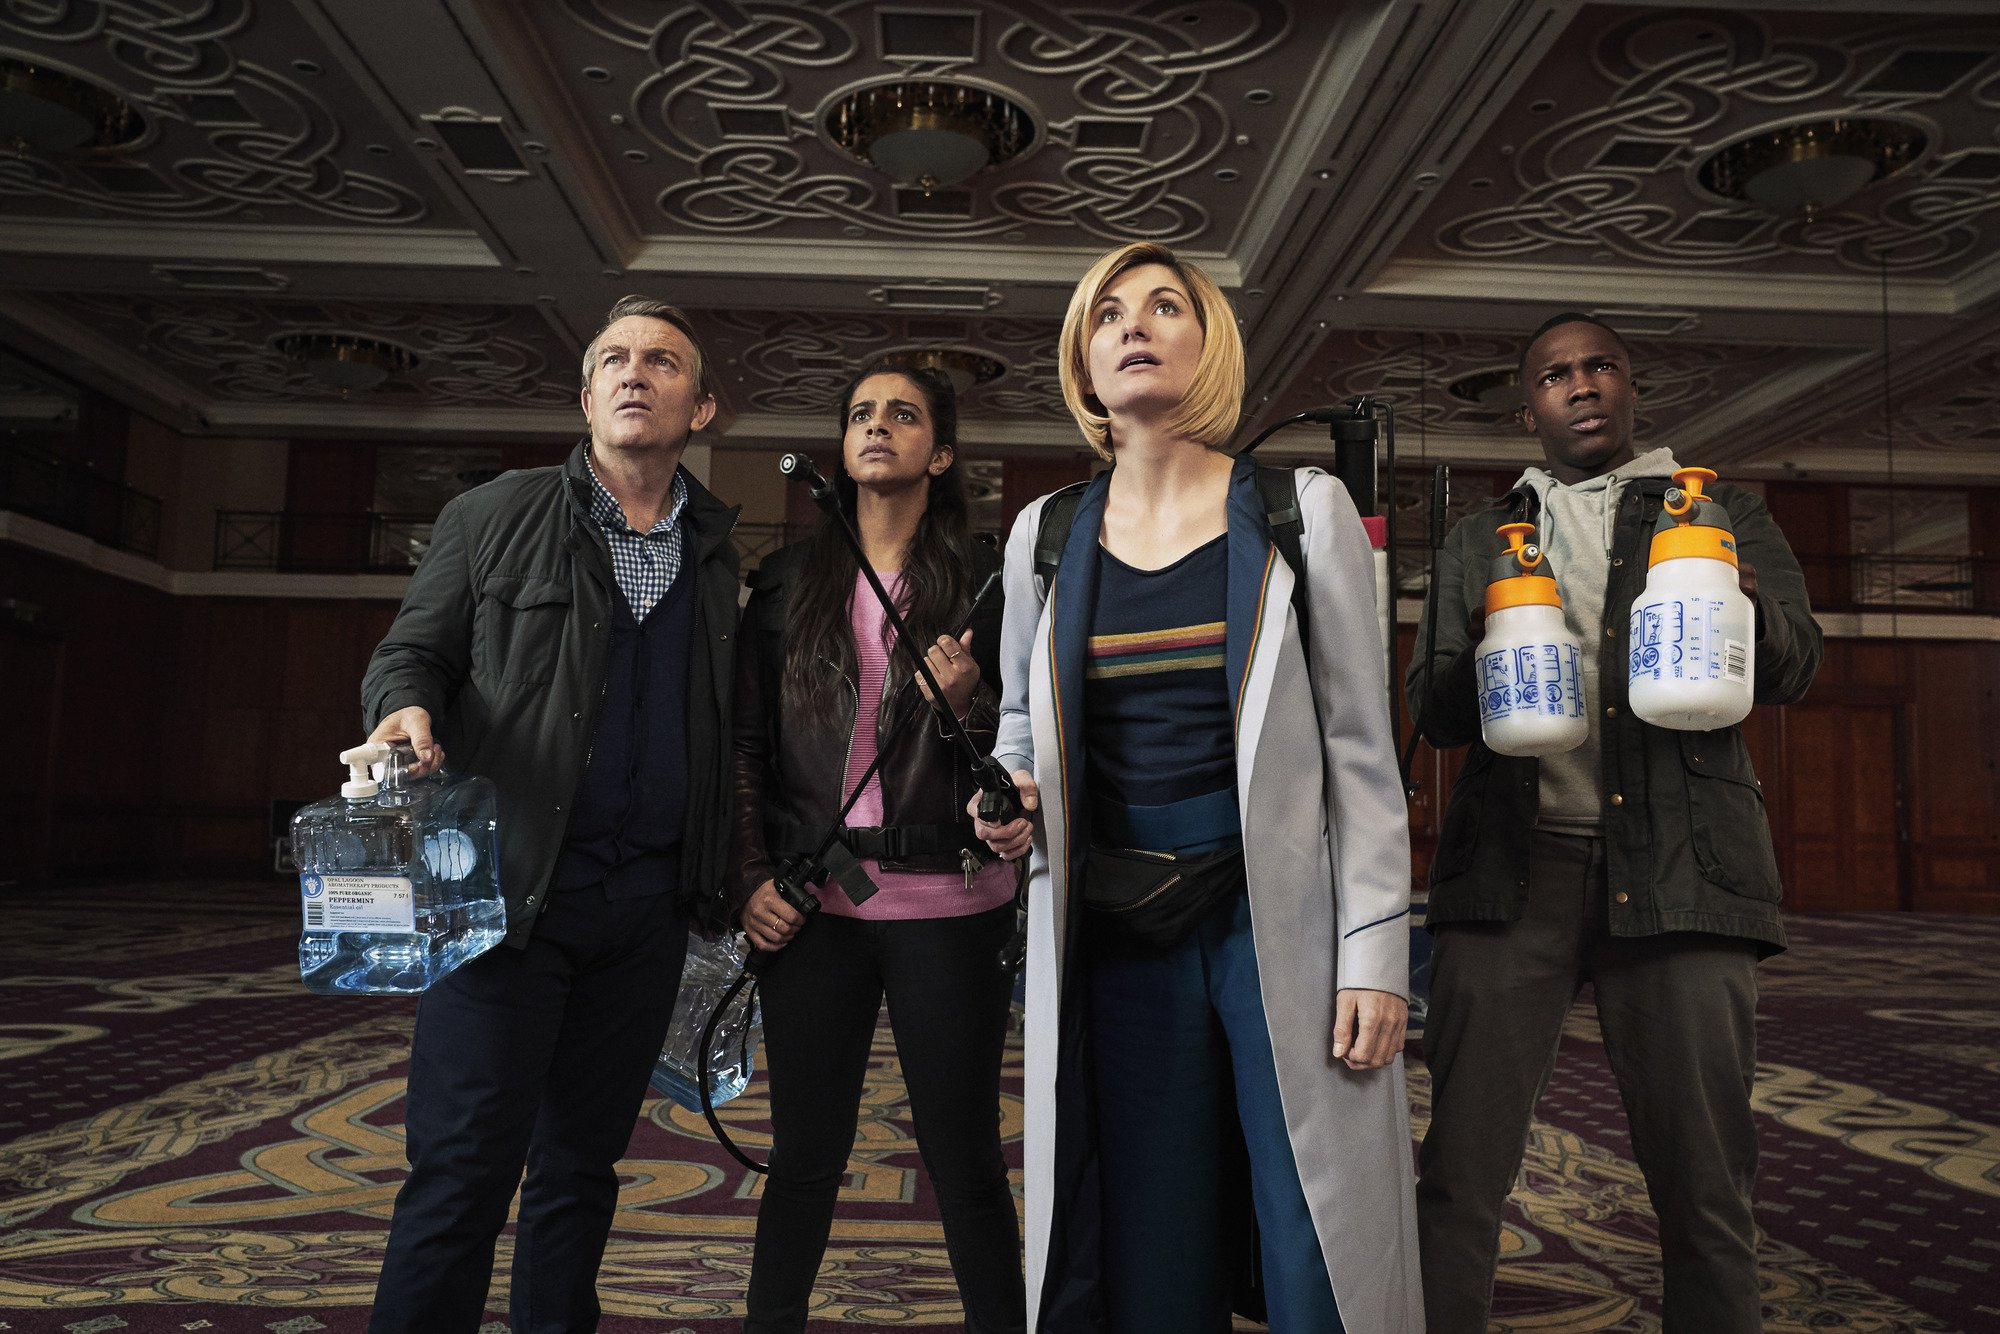 WARNING: Embargoed for publication until 00:00:01 on 28/10/2018 - Programme Name: Doctor Who Series 11 - TX: n/a - Episode: n/a (No. 4) - Picture Shows: Post-TX Strictly Embargoed until 28/10/2018 Graham (BRADLEY WALSH), Yaz (MANDIP GILL), The Doctor (JODIE WHITTAKER), Ryan (TOSIN COLE) - (C) BBC / BBC Studios - Photographer: Ben Blackall